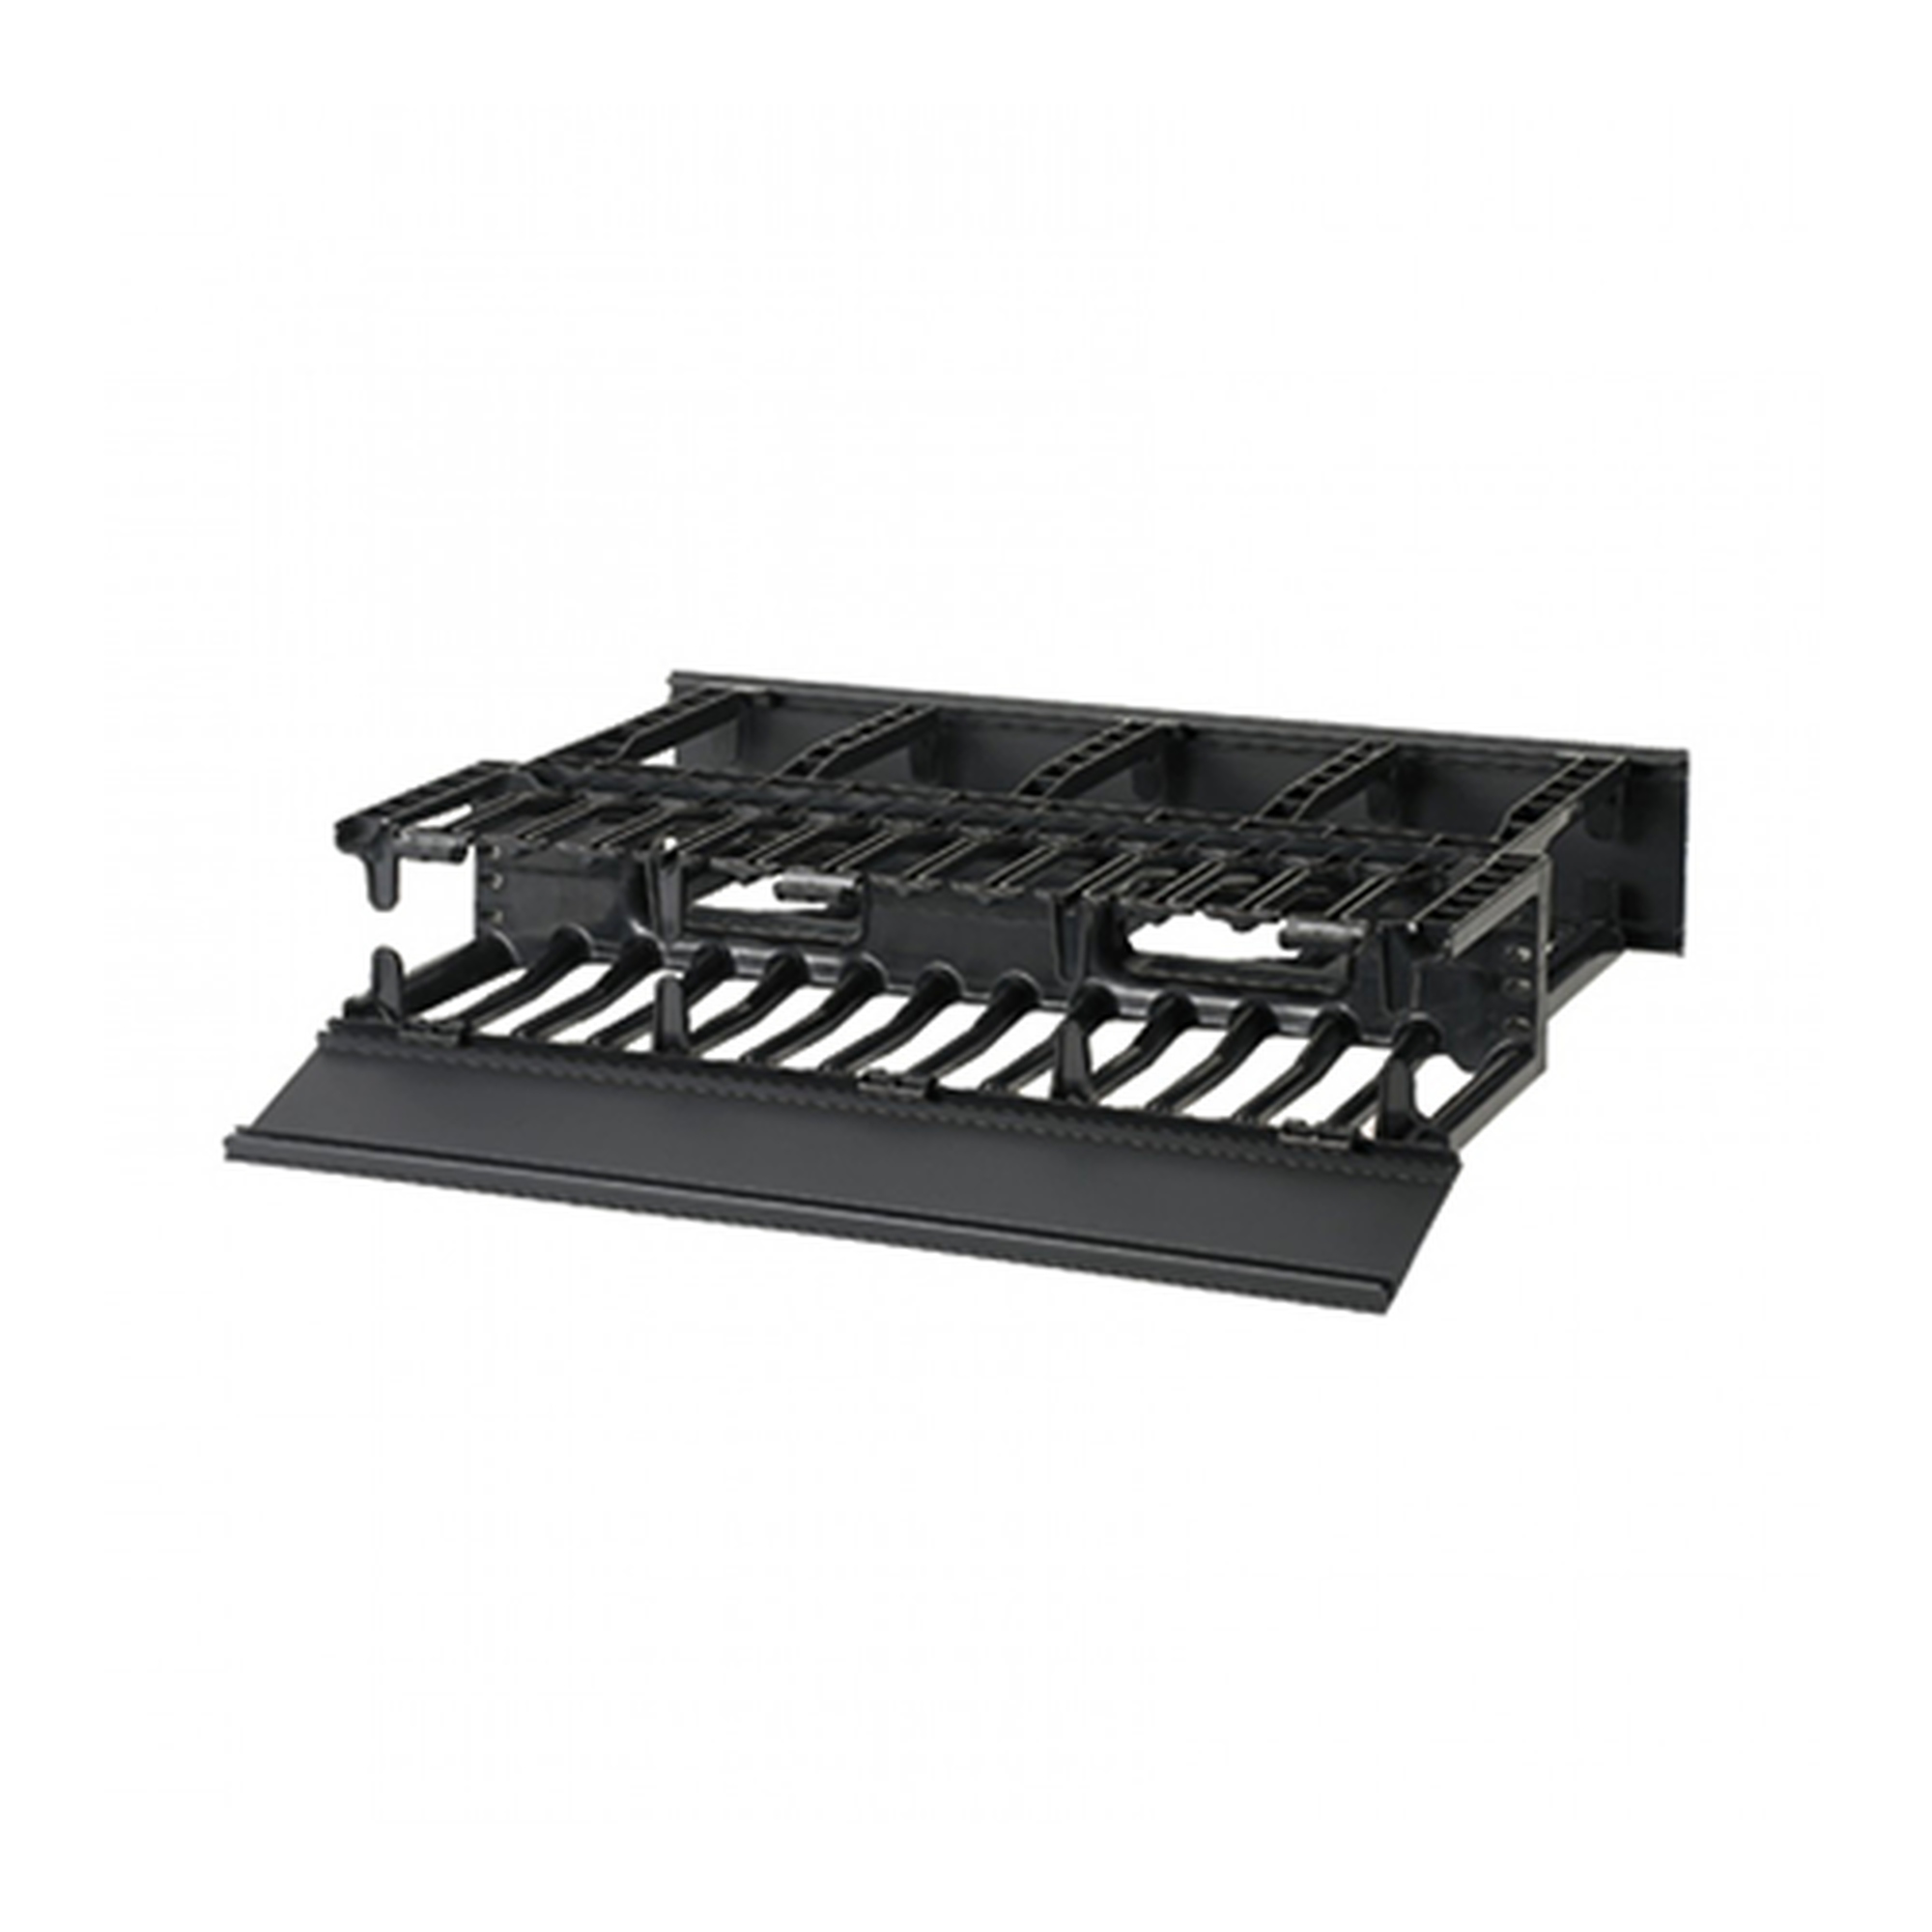 Organizador de Cables Horizontal NetManager, Doble (Frontal y Posterior), Para Rack de 19in, 2UR